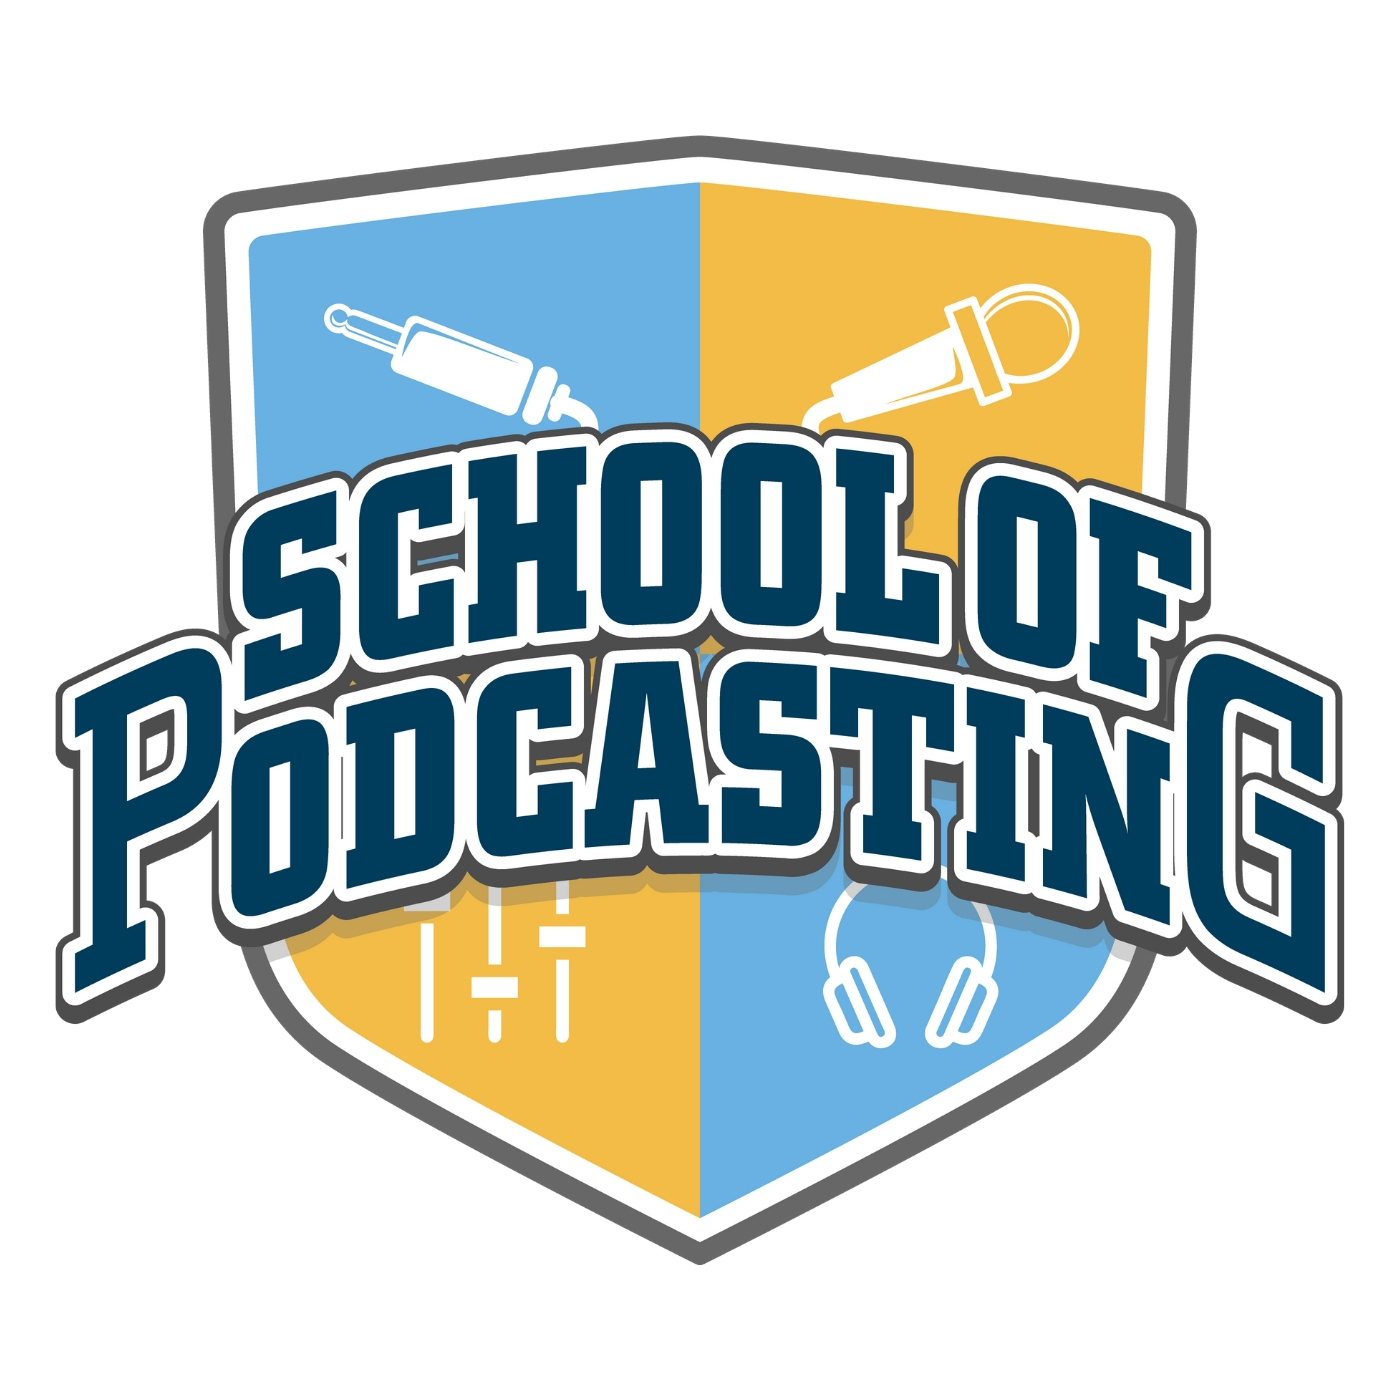 Artwork for Behind The Scenes of a Podcasting Membership Site